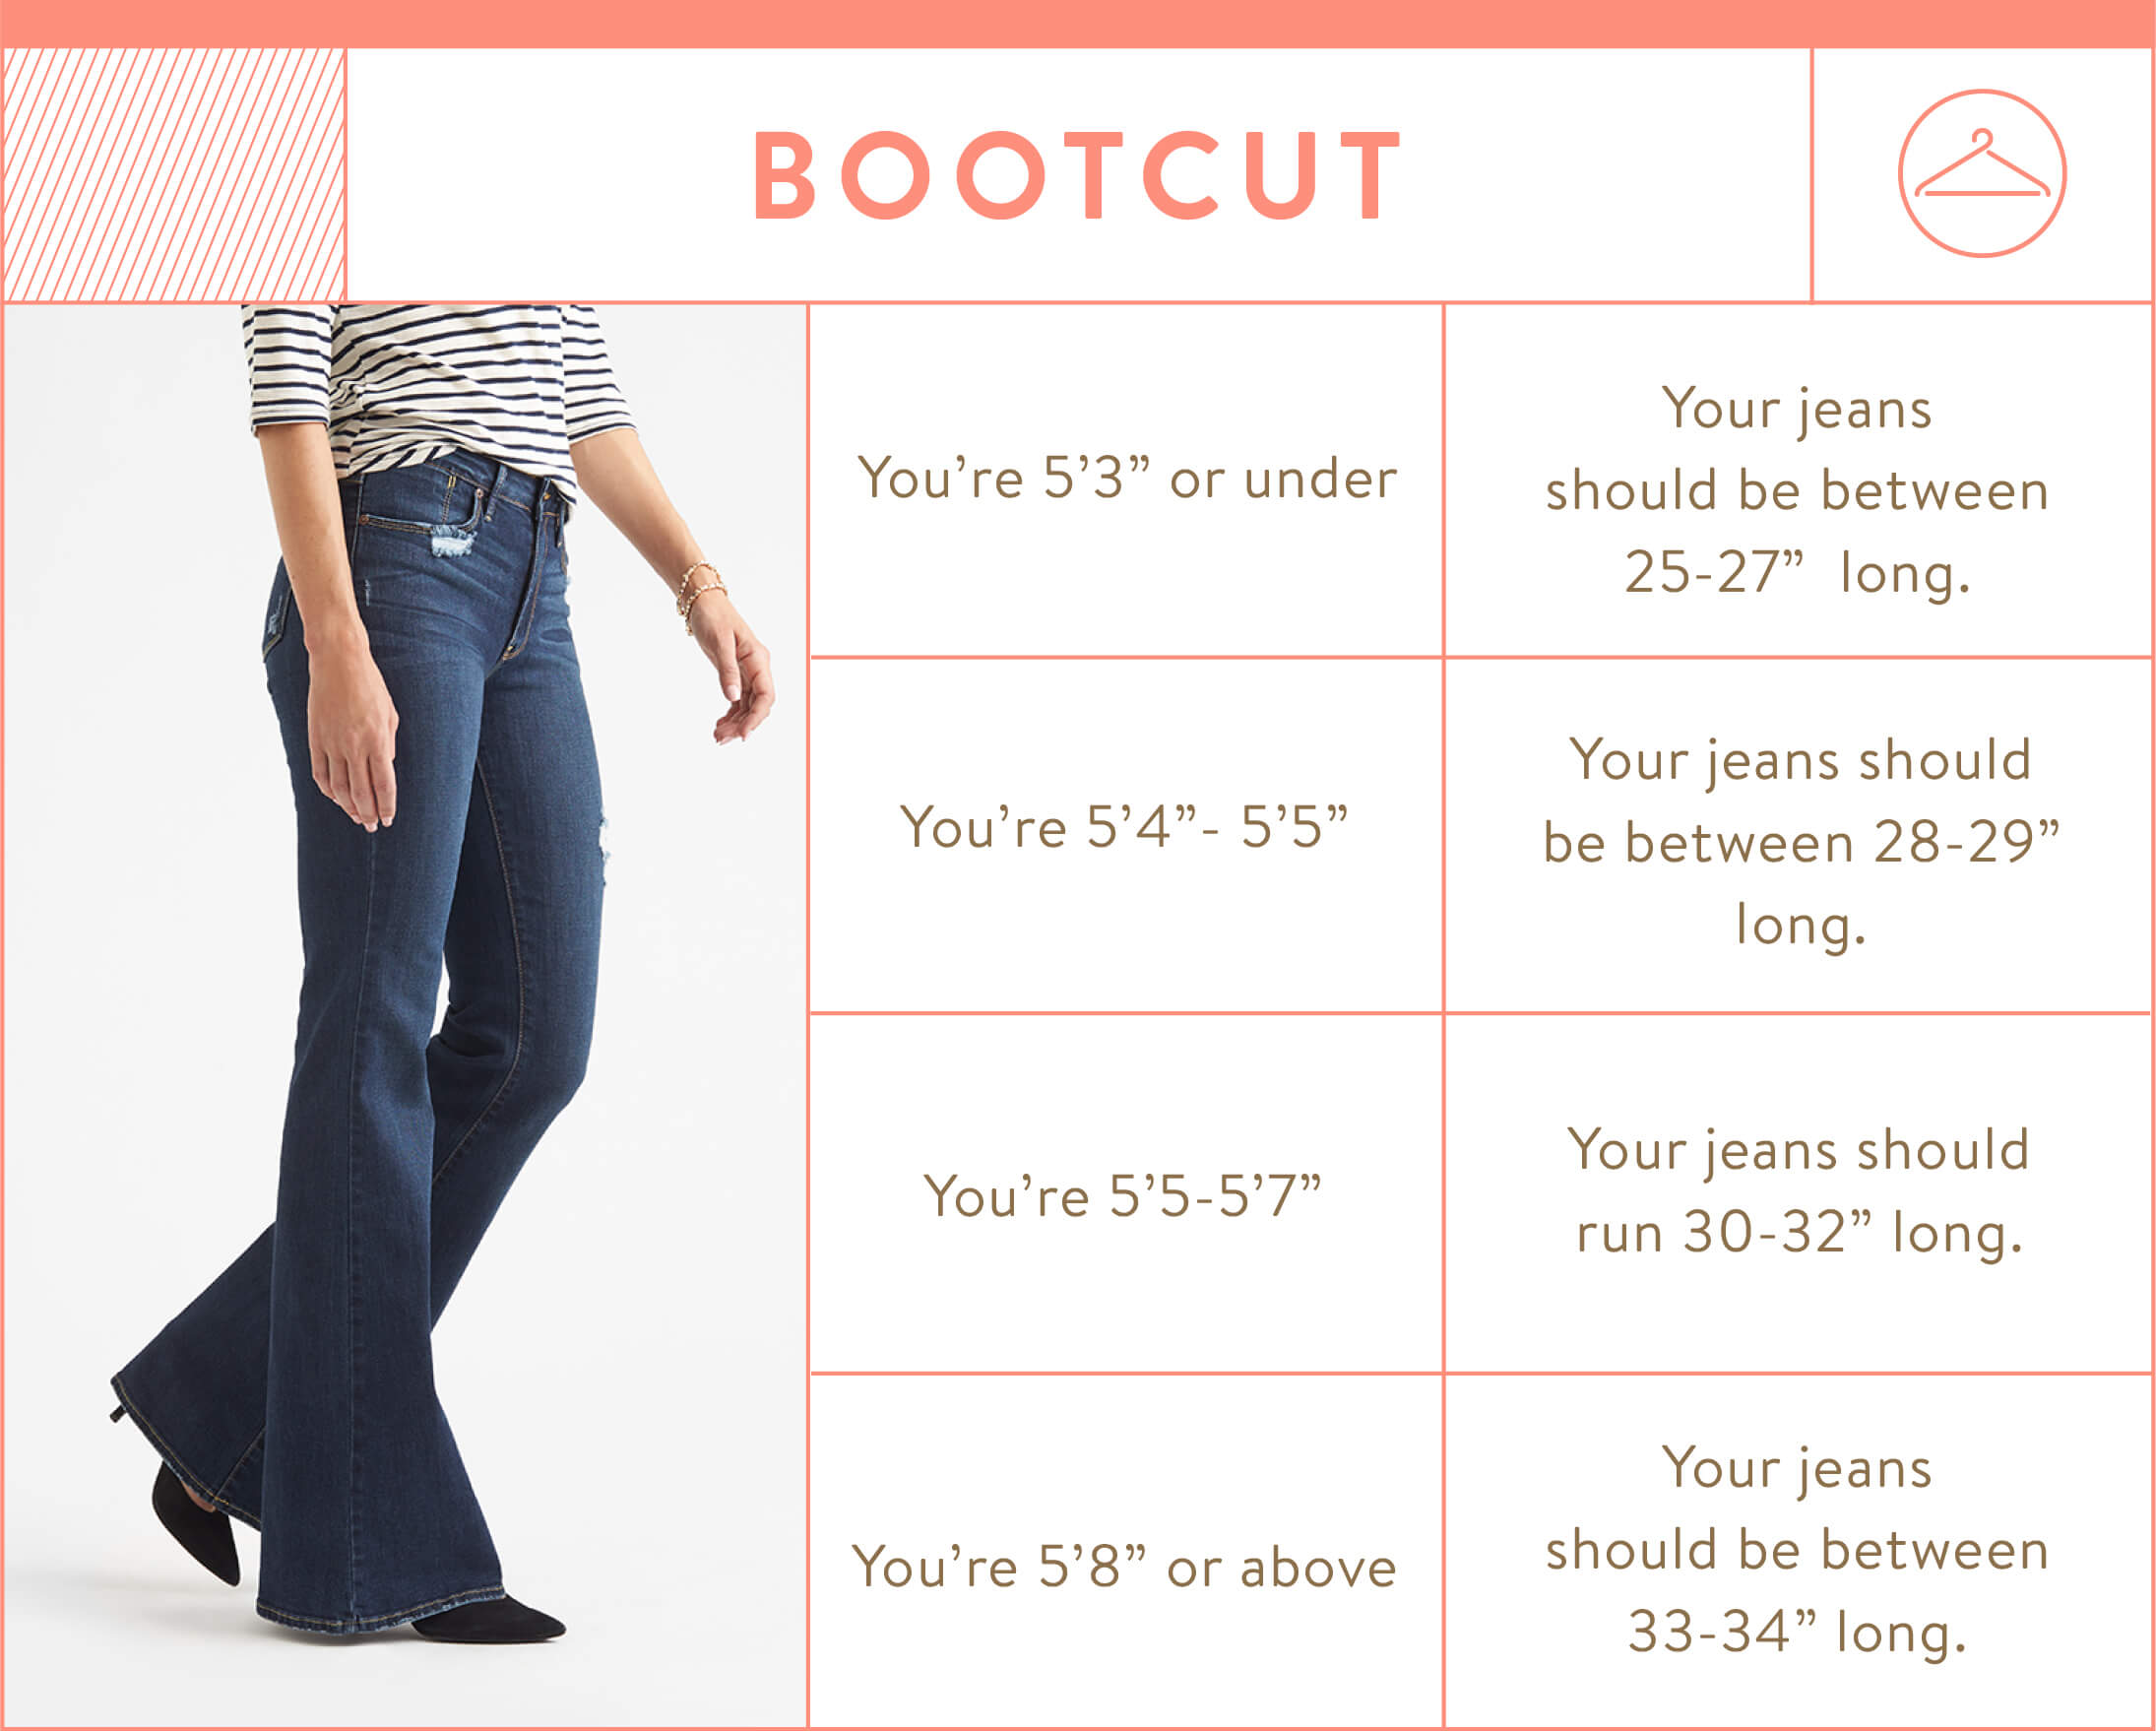 What Does Bootcut Jeans Mean - Jeans Am